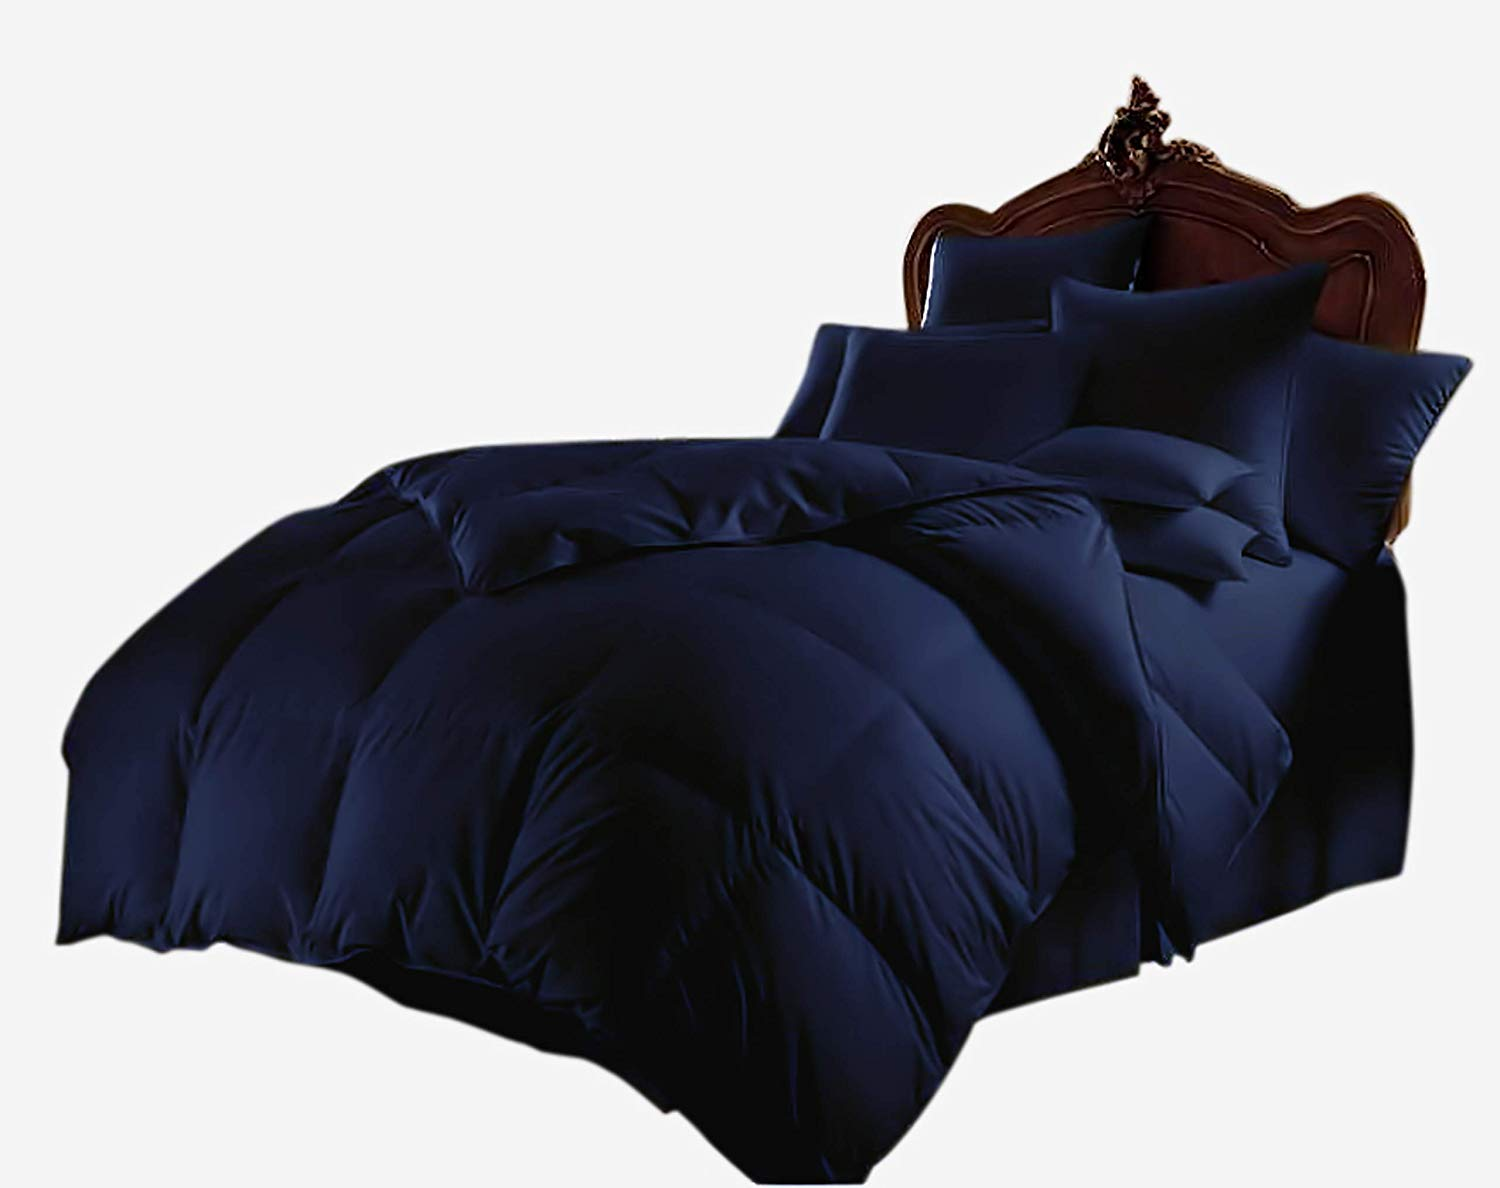 All Season Luxurious 800 Series,Luxury Goose Down Alternative Comforter, Oversized-King - Quilt 1 PC Comforter -100% Egyptian Cotton Comforter Set, Hotel Quality 600 GSM,Navy Blue(98''x120'') by SOFTBED COLLECTION